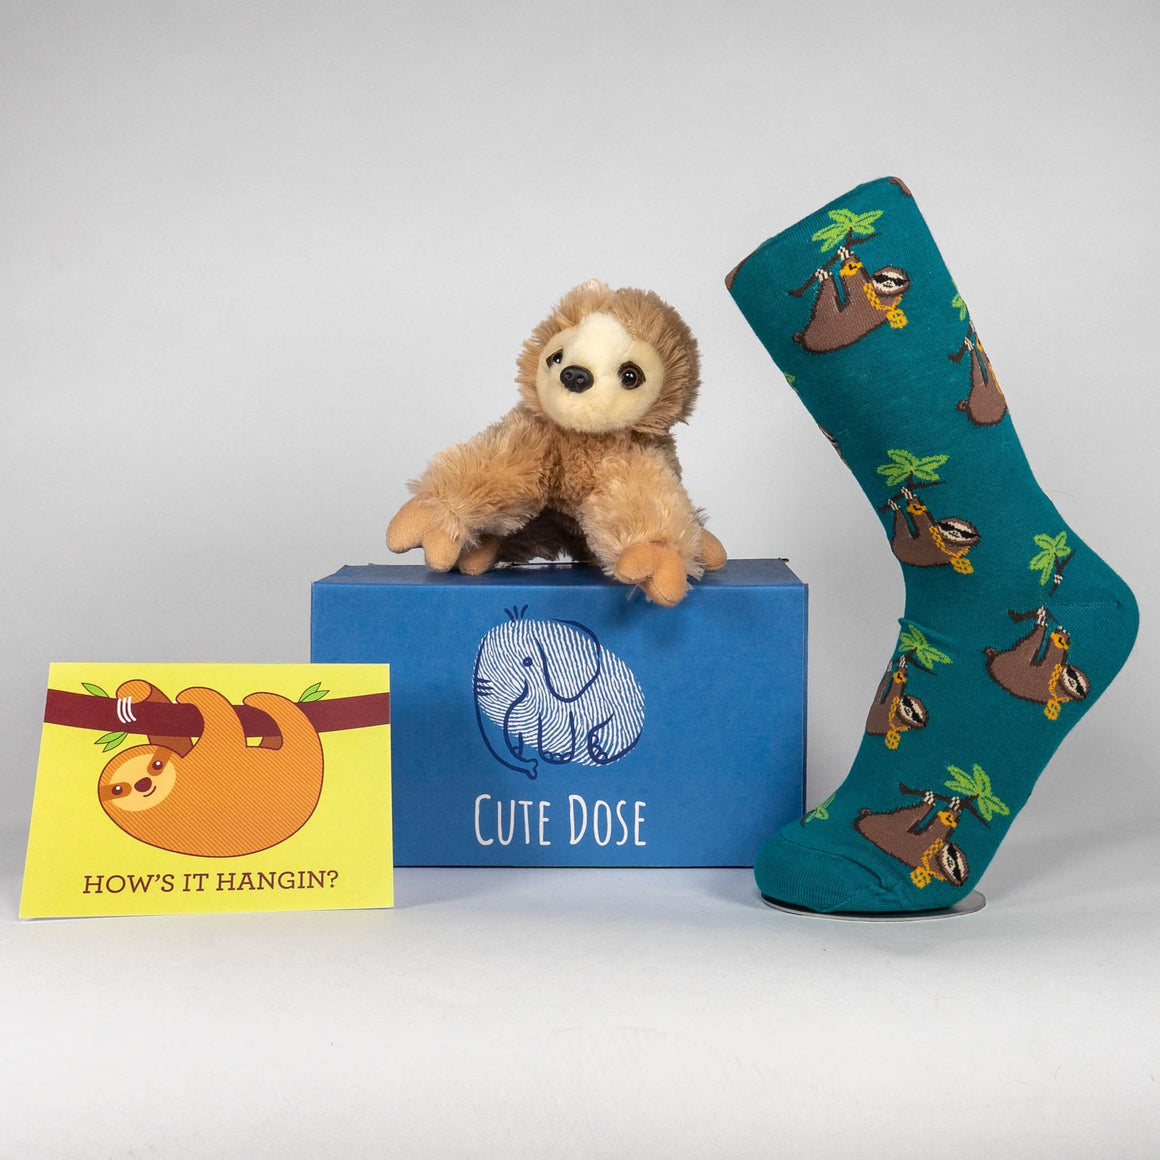 Mini Sloth Care Package - Cute Dose